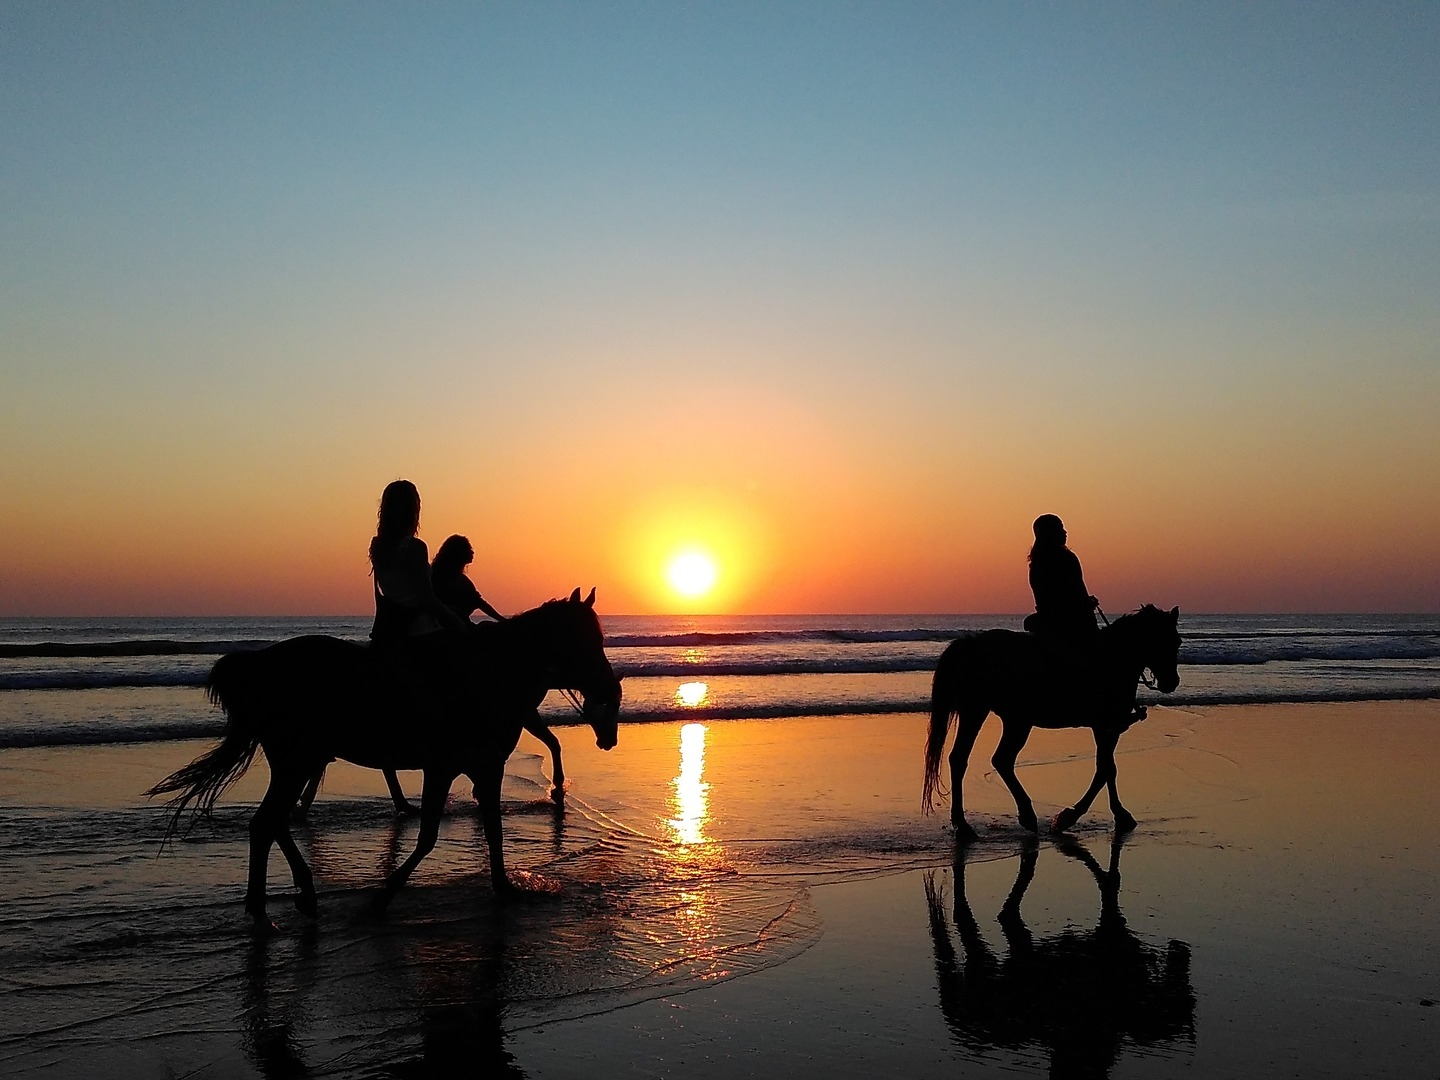 Horseback Riding - Experience this paradise on a different setting, riding the back of a horse on a wild beach. Discover the breathtaking views of these tropical paths. whether you are a beginner or experienced, the excursion adapts to any level. We are happy to work with a ranch that is very loving and respectful to his beautiful animals. Discover the hidden trails and the seaside. From 30' minutes to the whole day, there are plenty of magnificent excursions available for all ages.